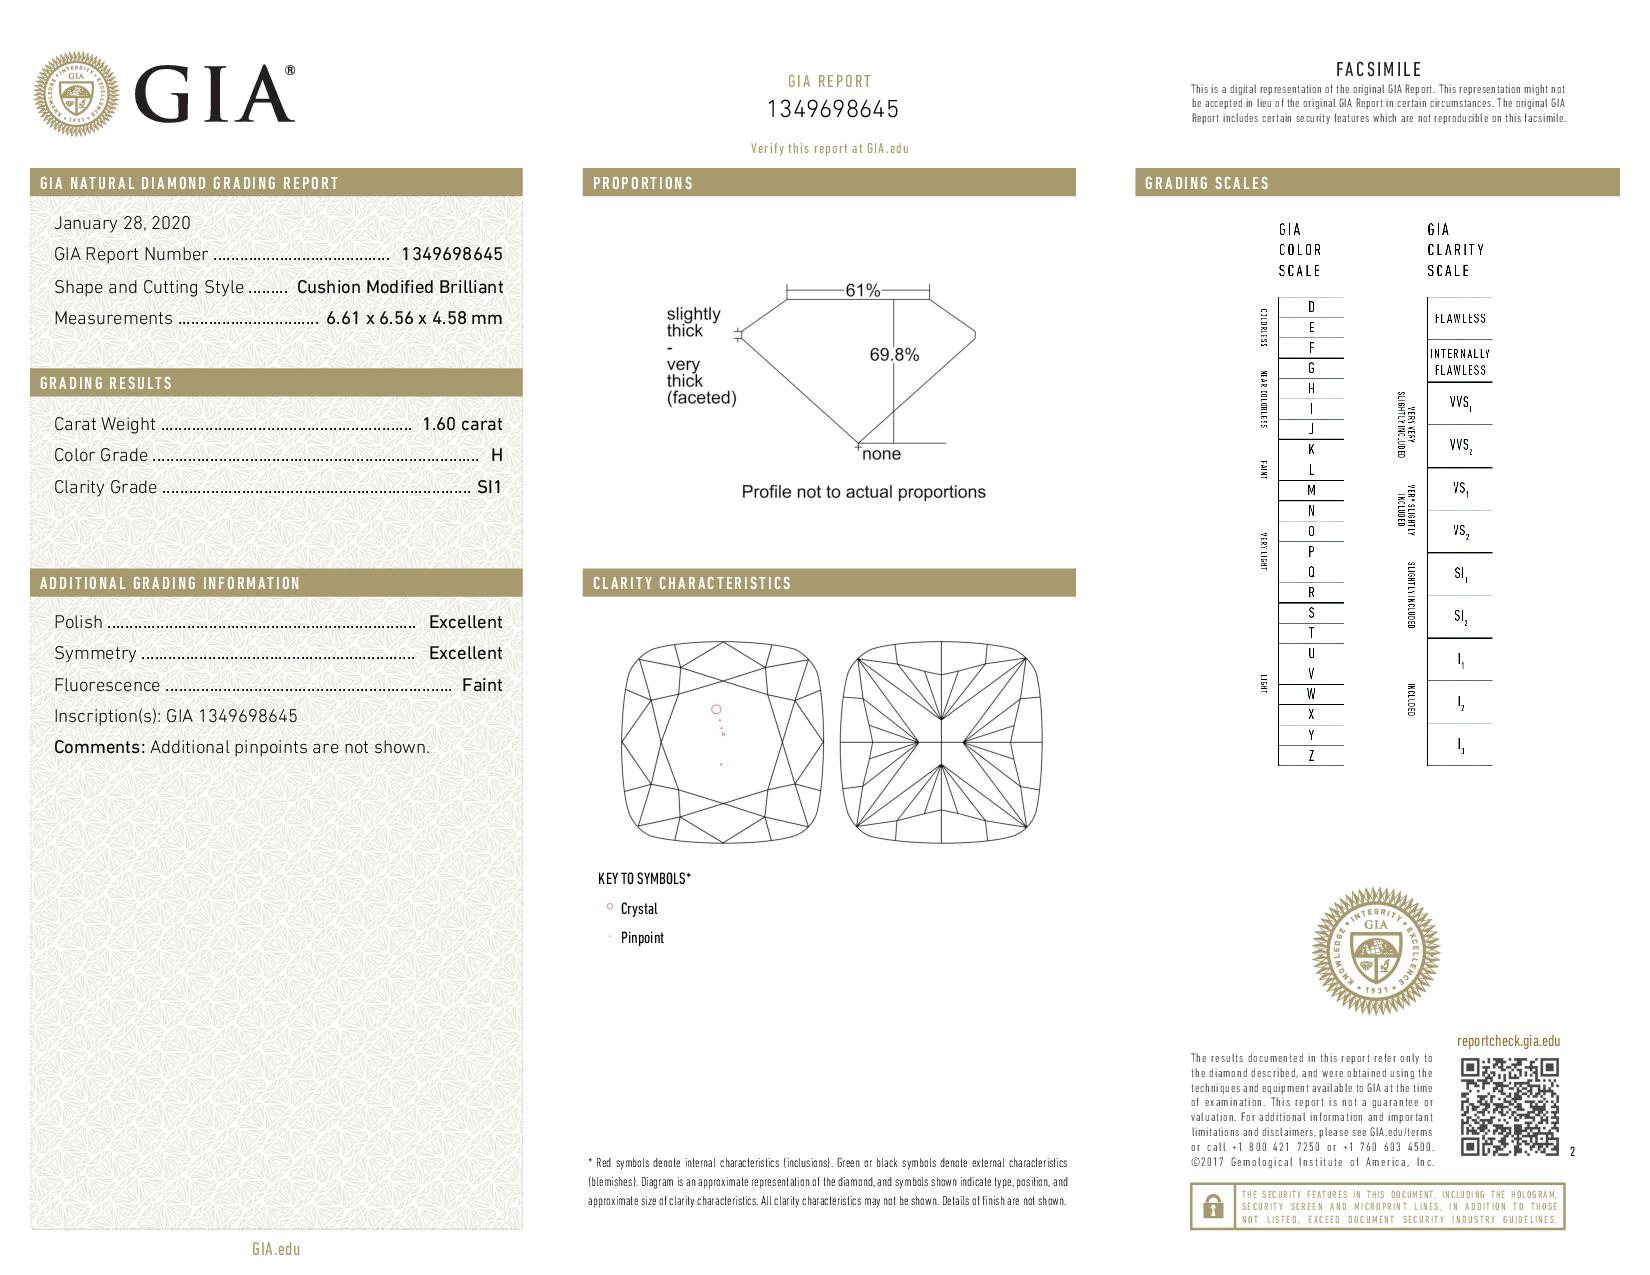 This is a 1.60 carat cushion shape, H color, SI1 clarity natural diamond accompanied by a GIA grading report.